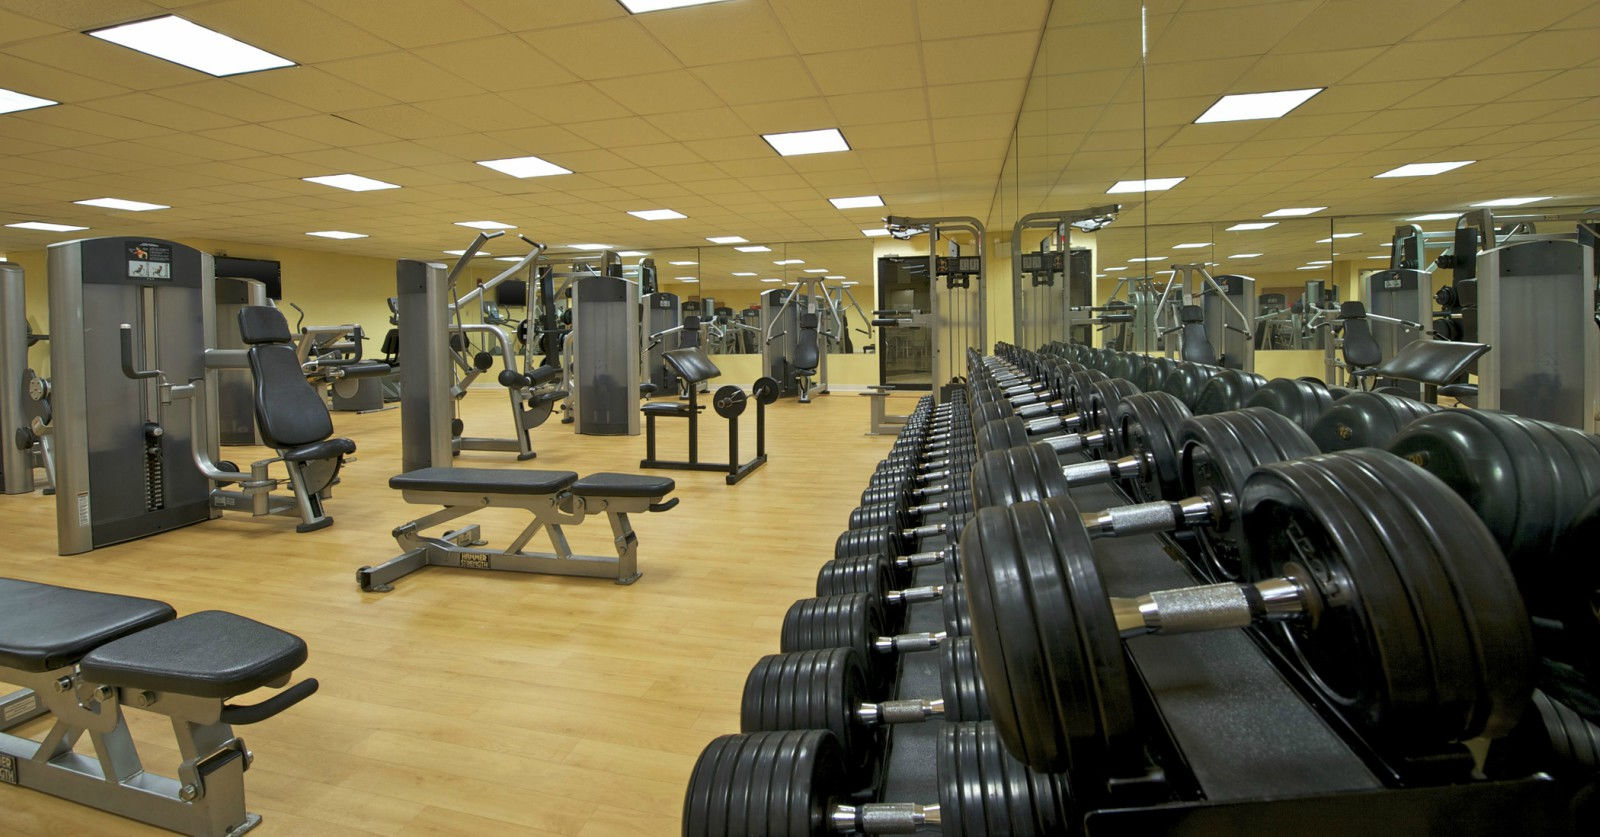 Hotel Features | Sheraton Bucks County Hotel Fitness Center